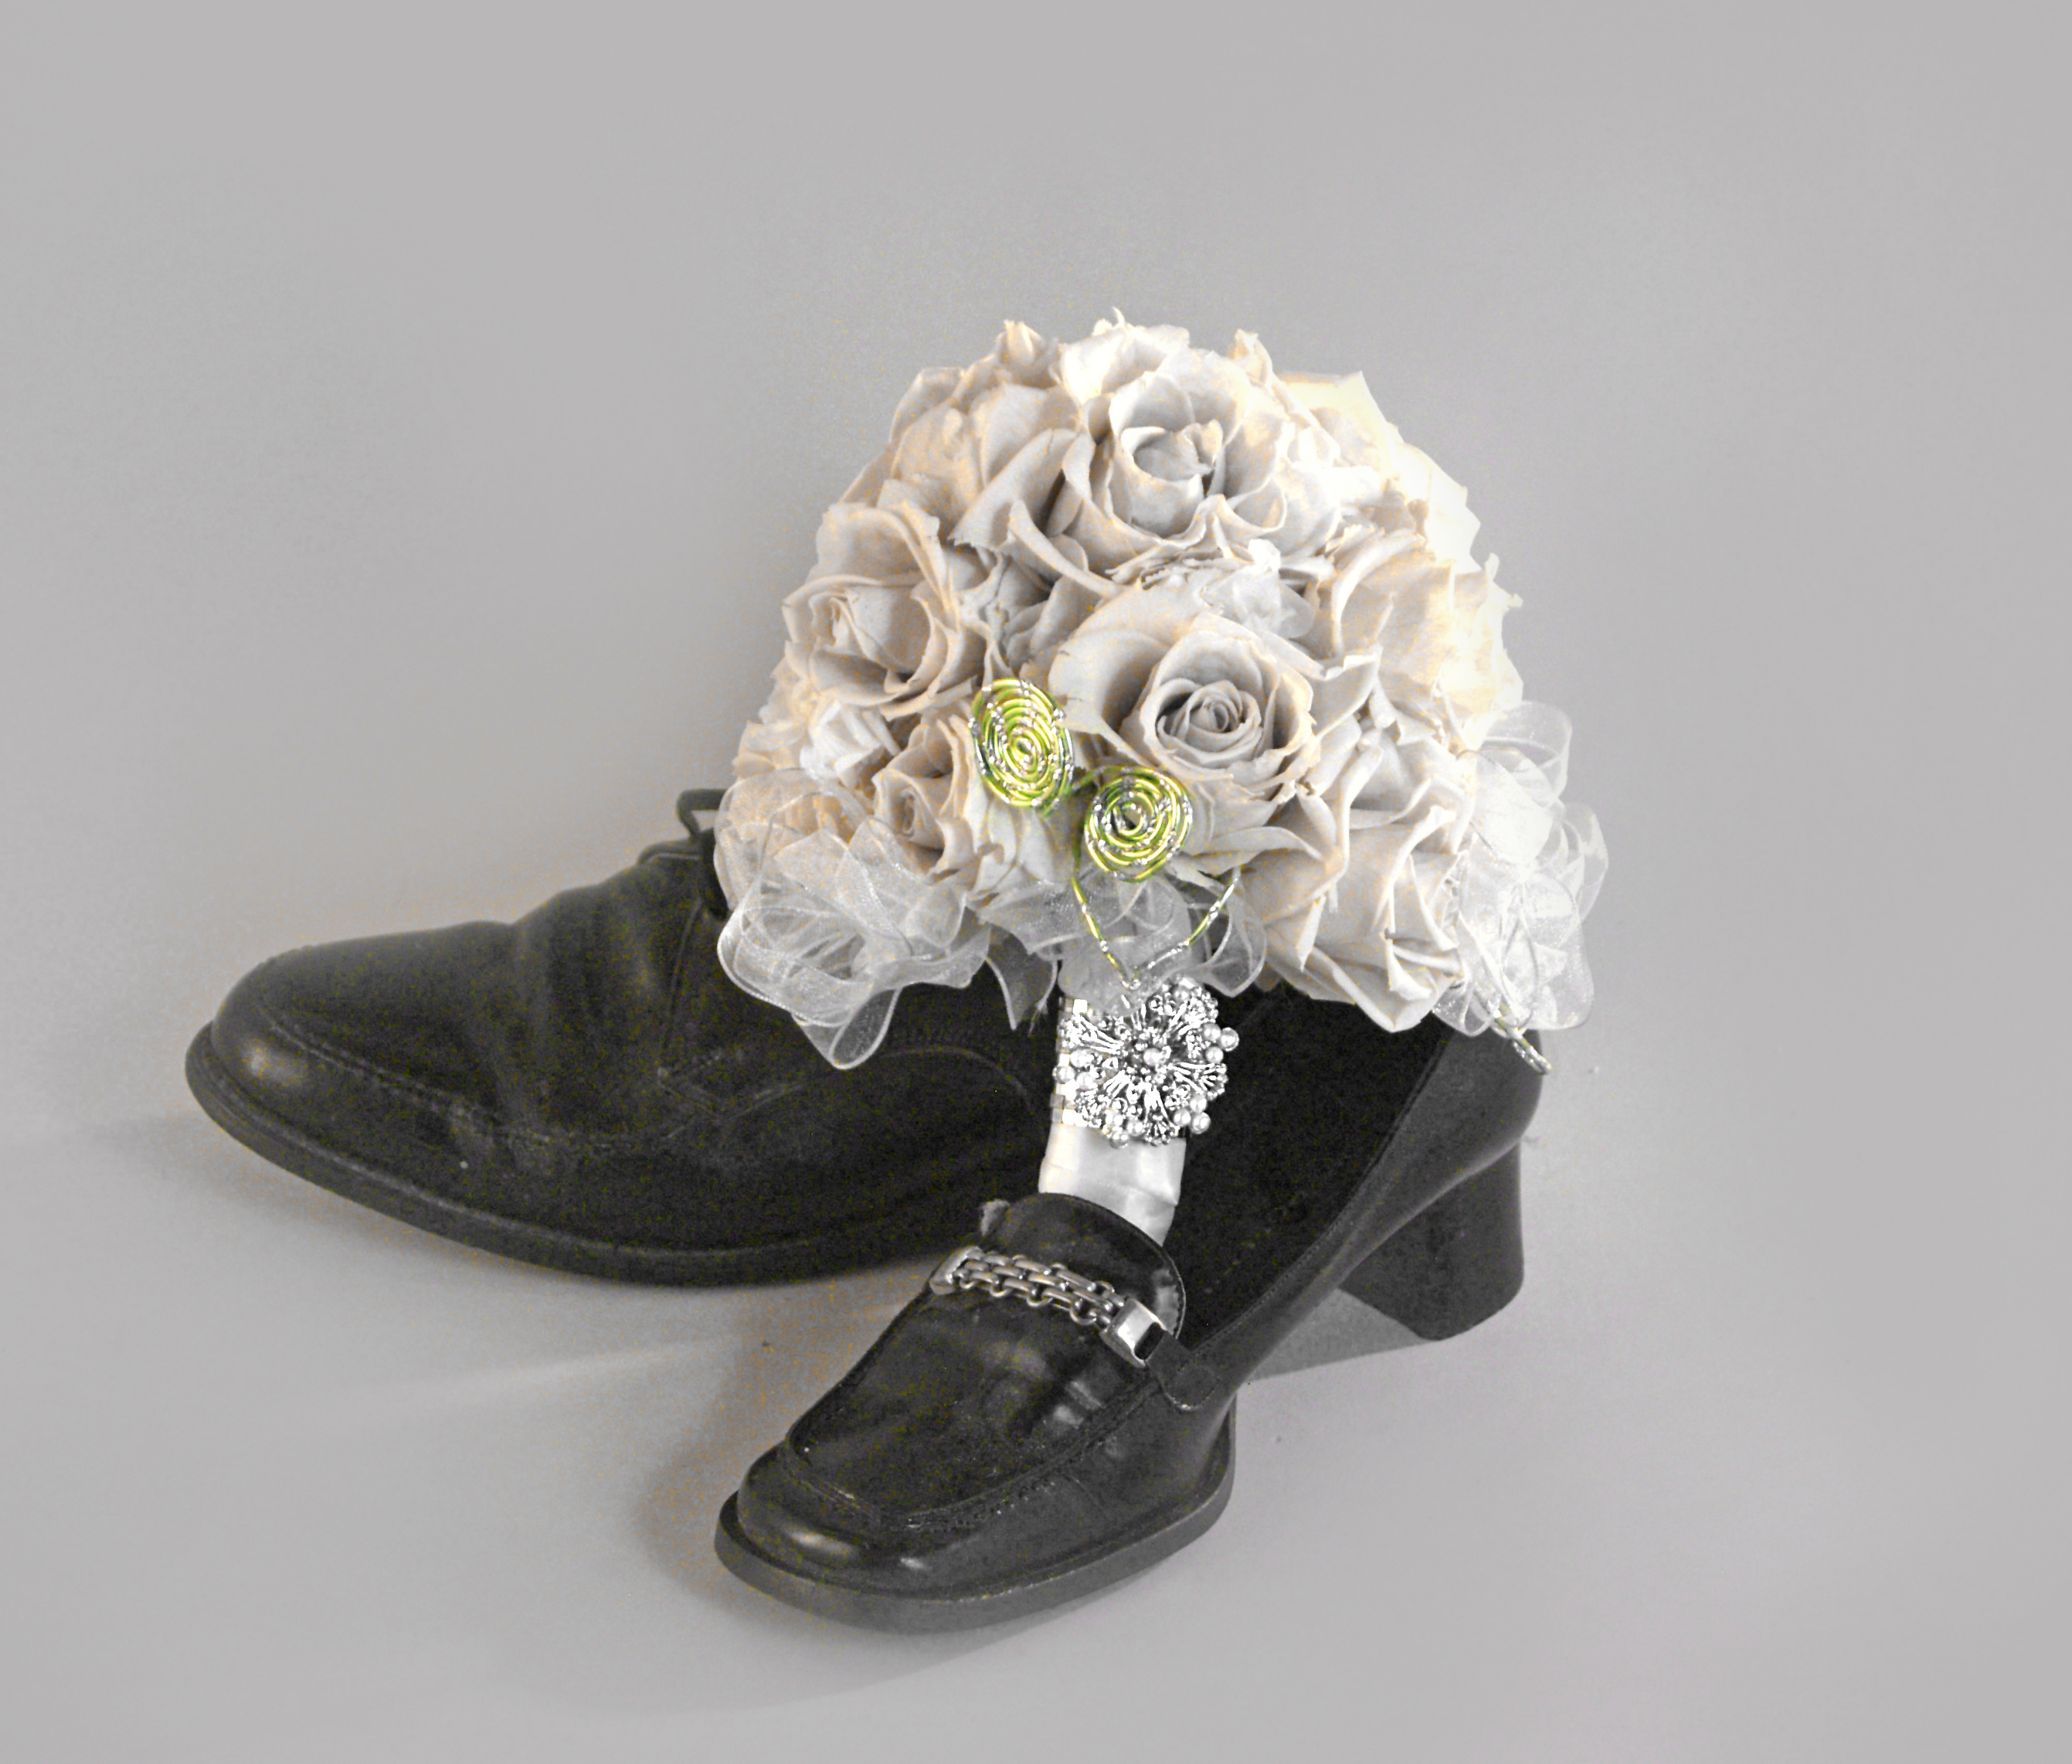 White_20rose_20bouquet_20black_20shoes.original.original